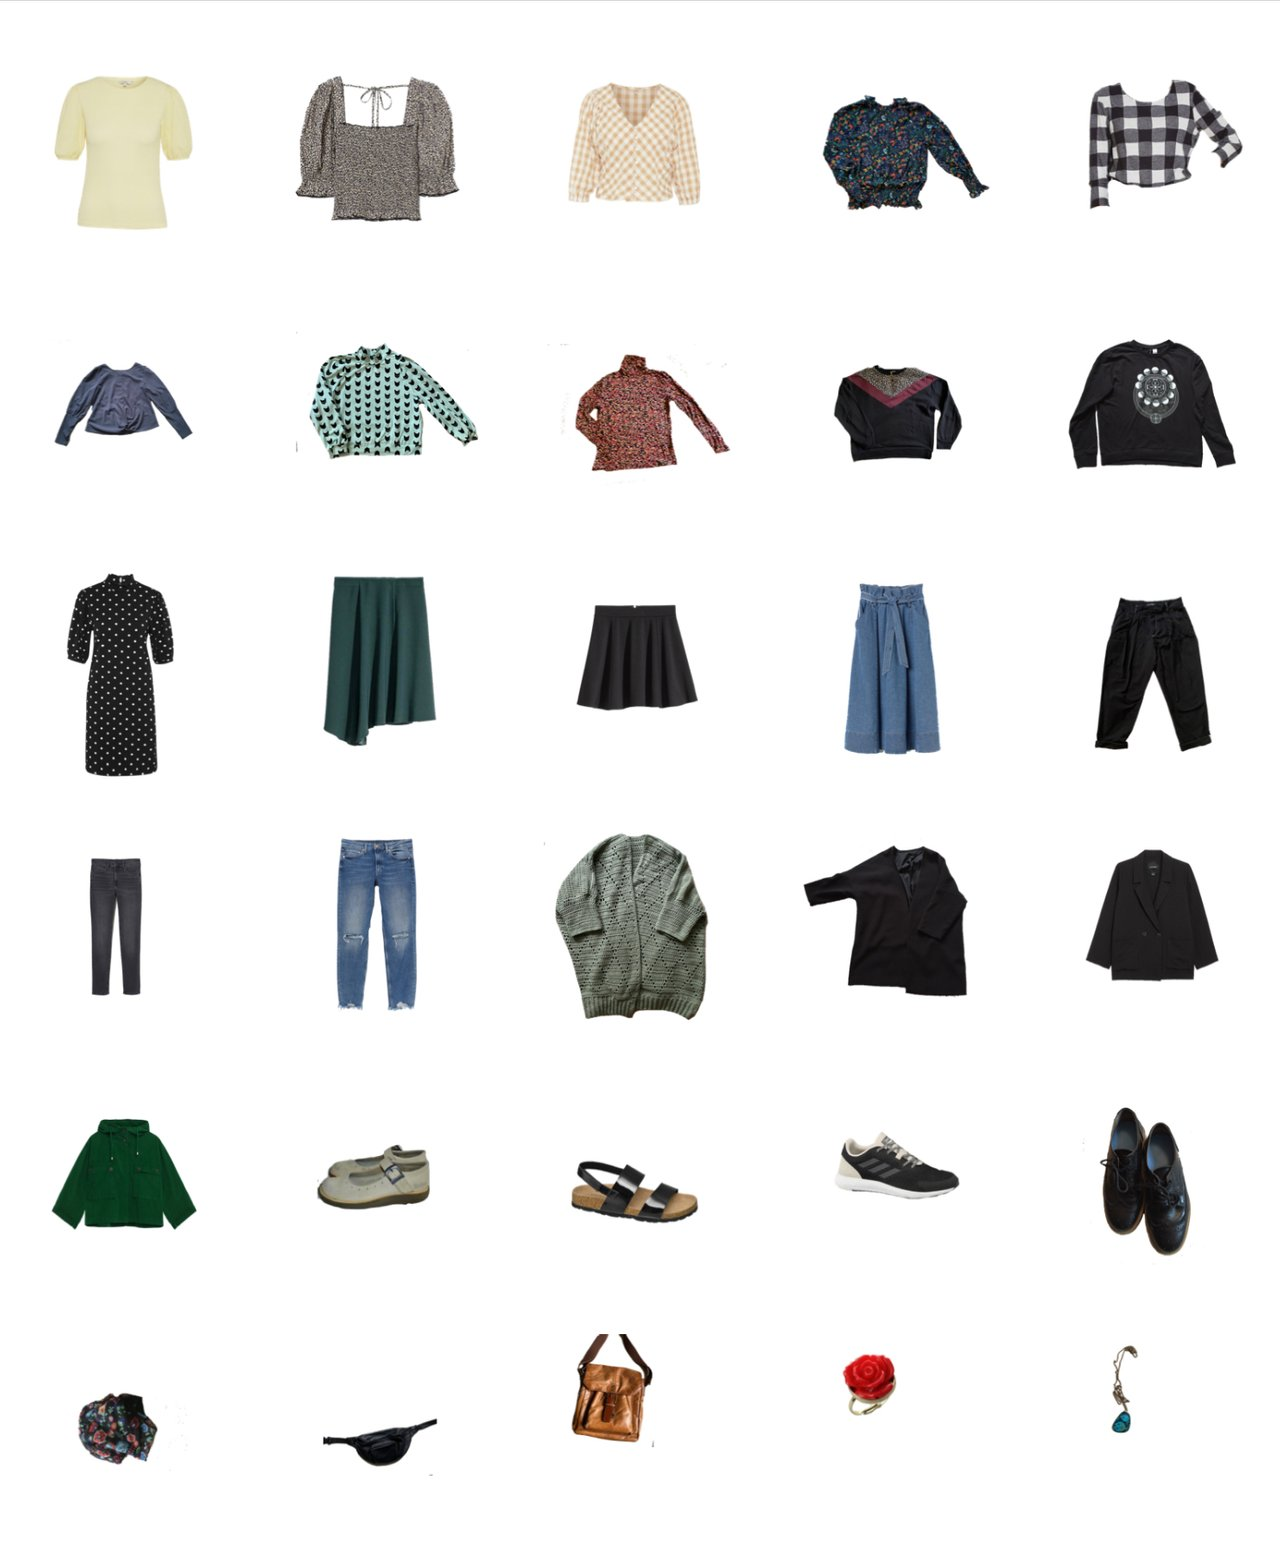 mint and black garment selection of a capsule closet